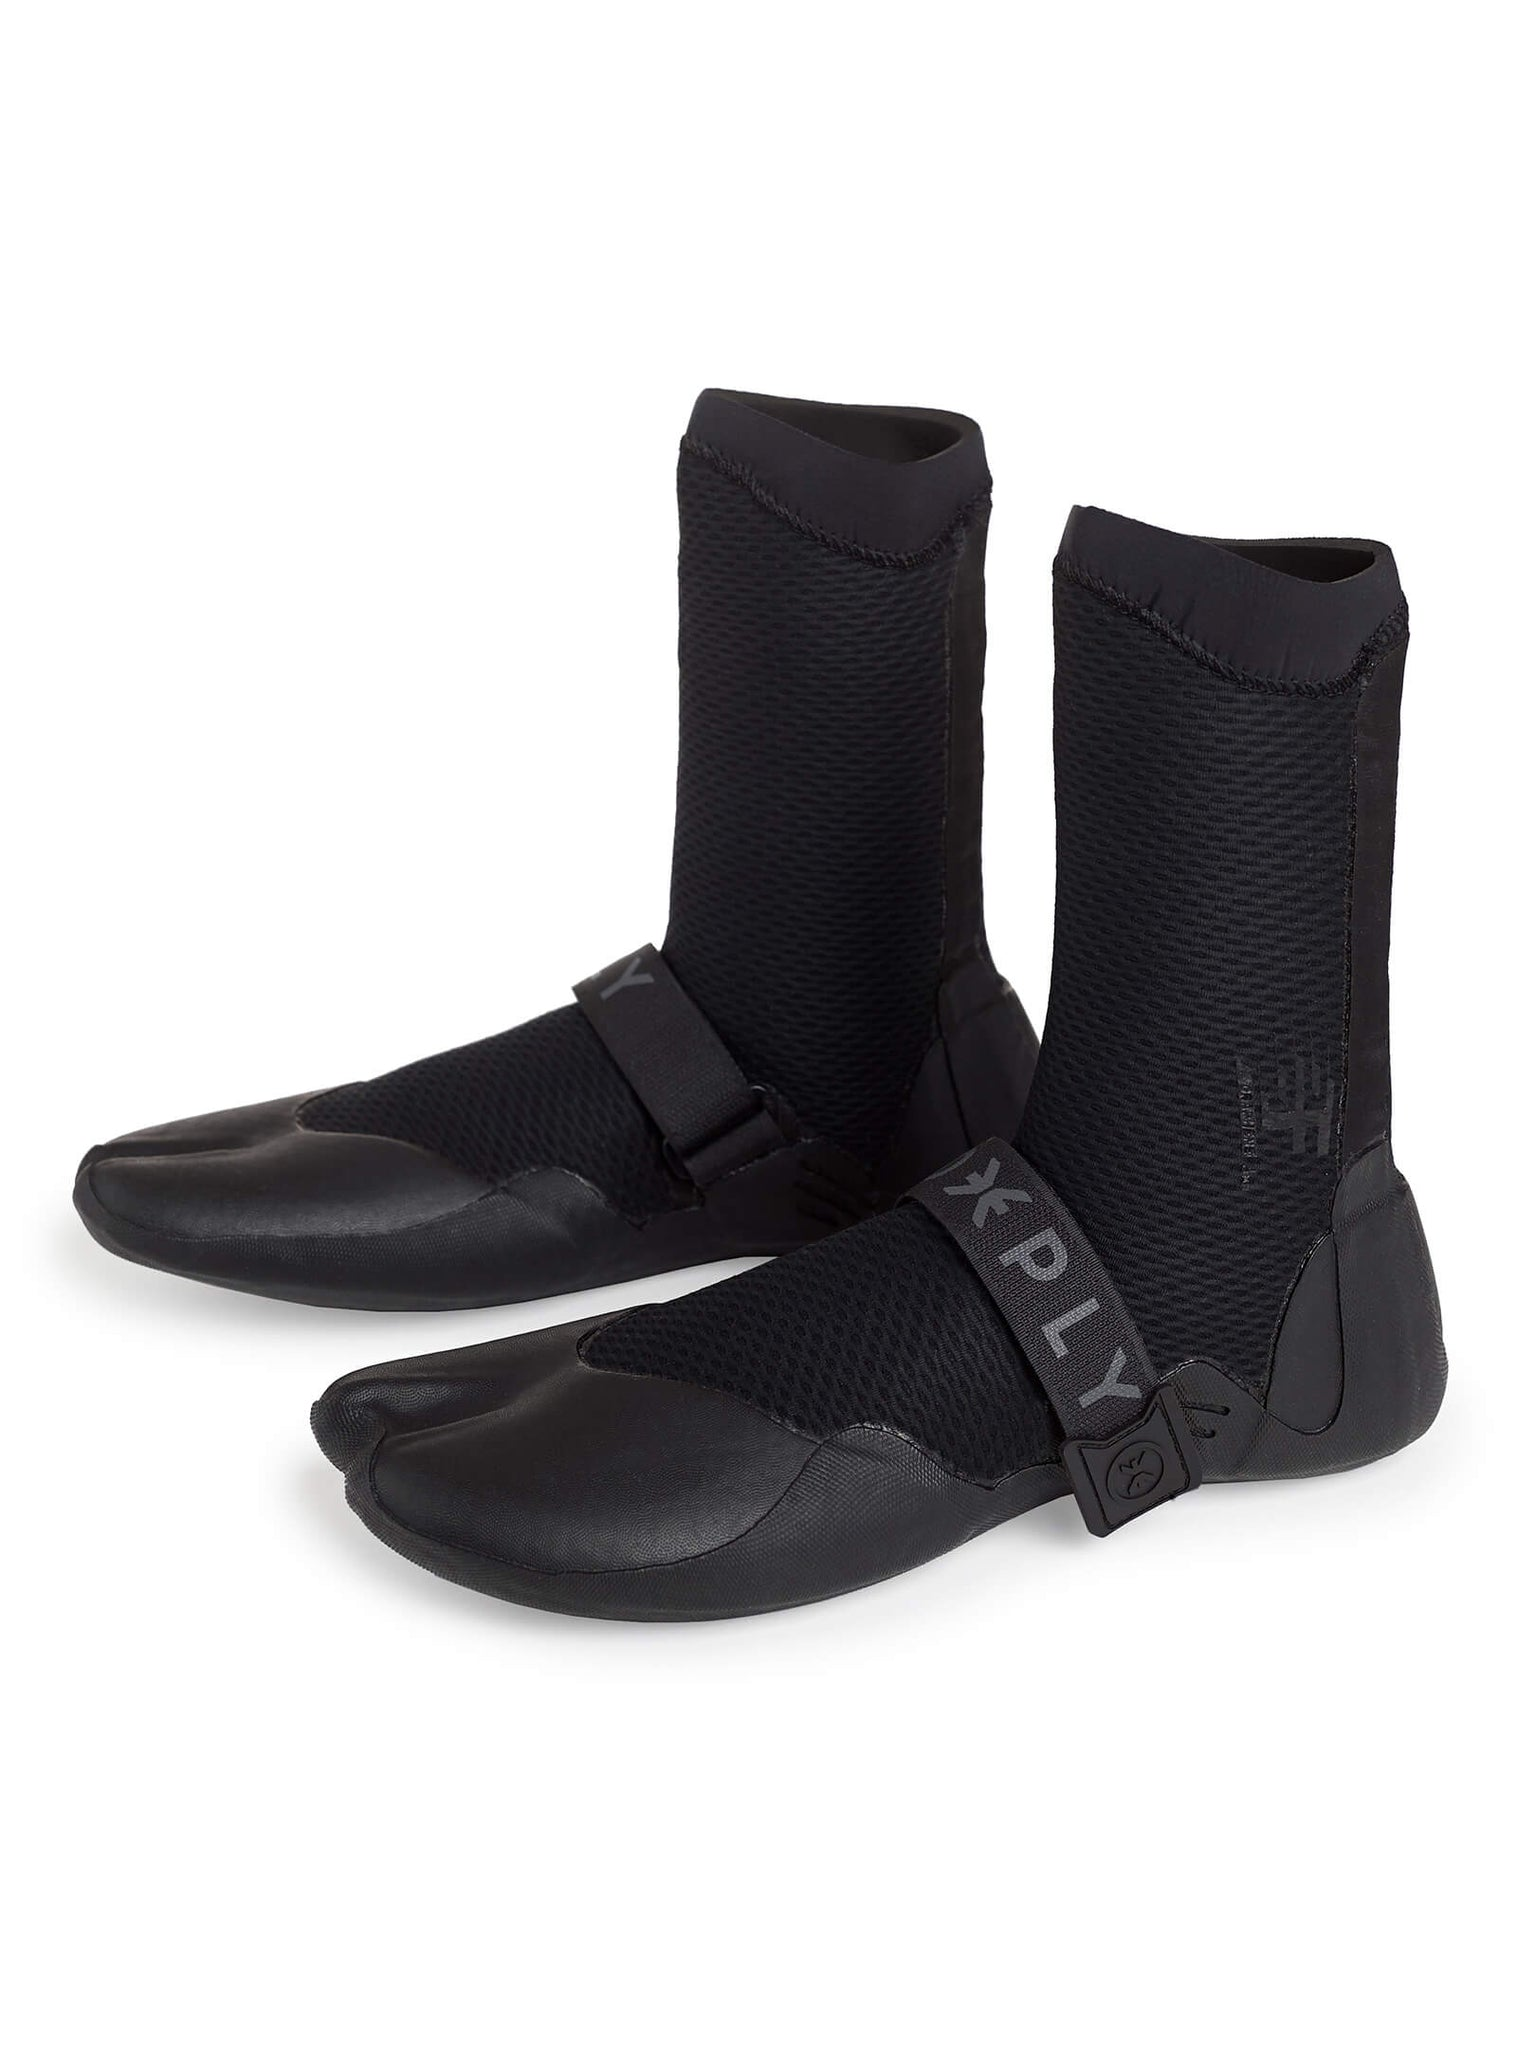 Surf Boots 3mm Graphene Surf Boots Black